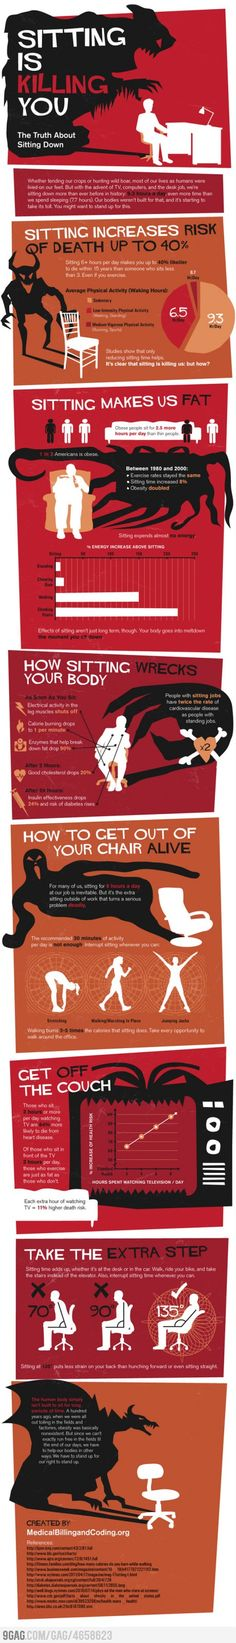 sitting is killing us. this is not a joke. get moving!